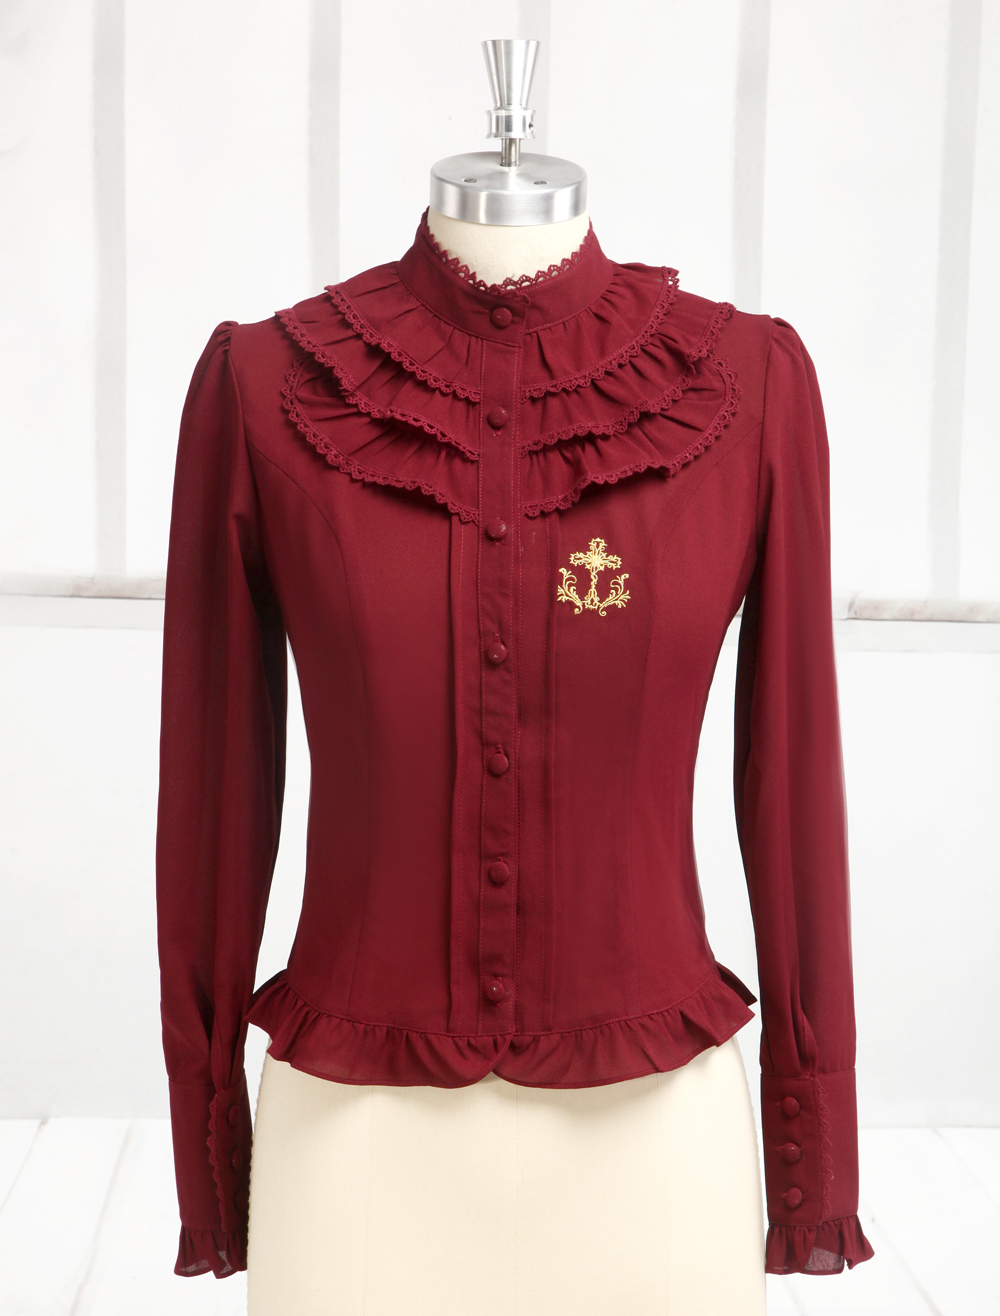 Hime Dark Red Chiffon Long Sleeves Lolita Shirt